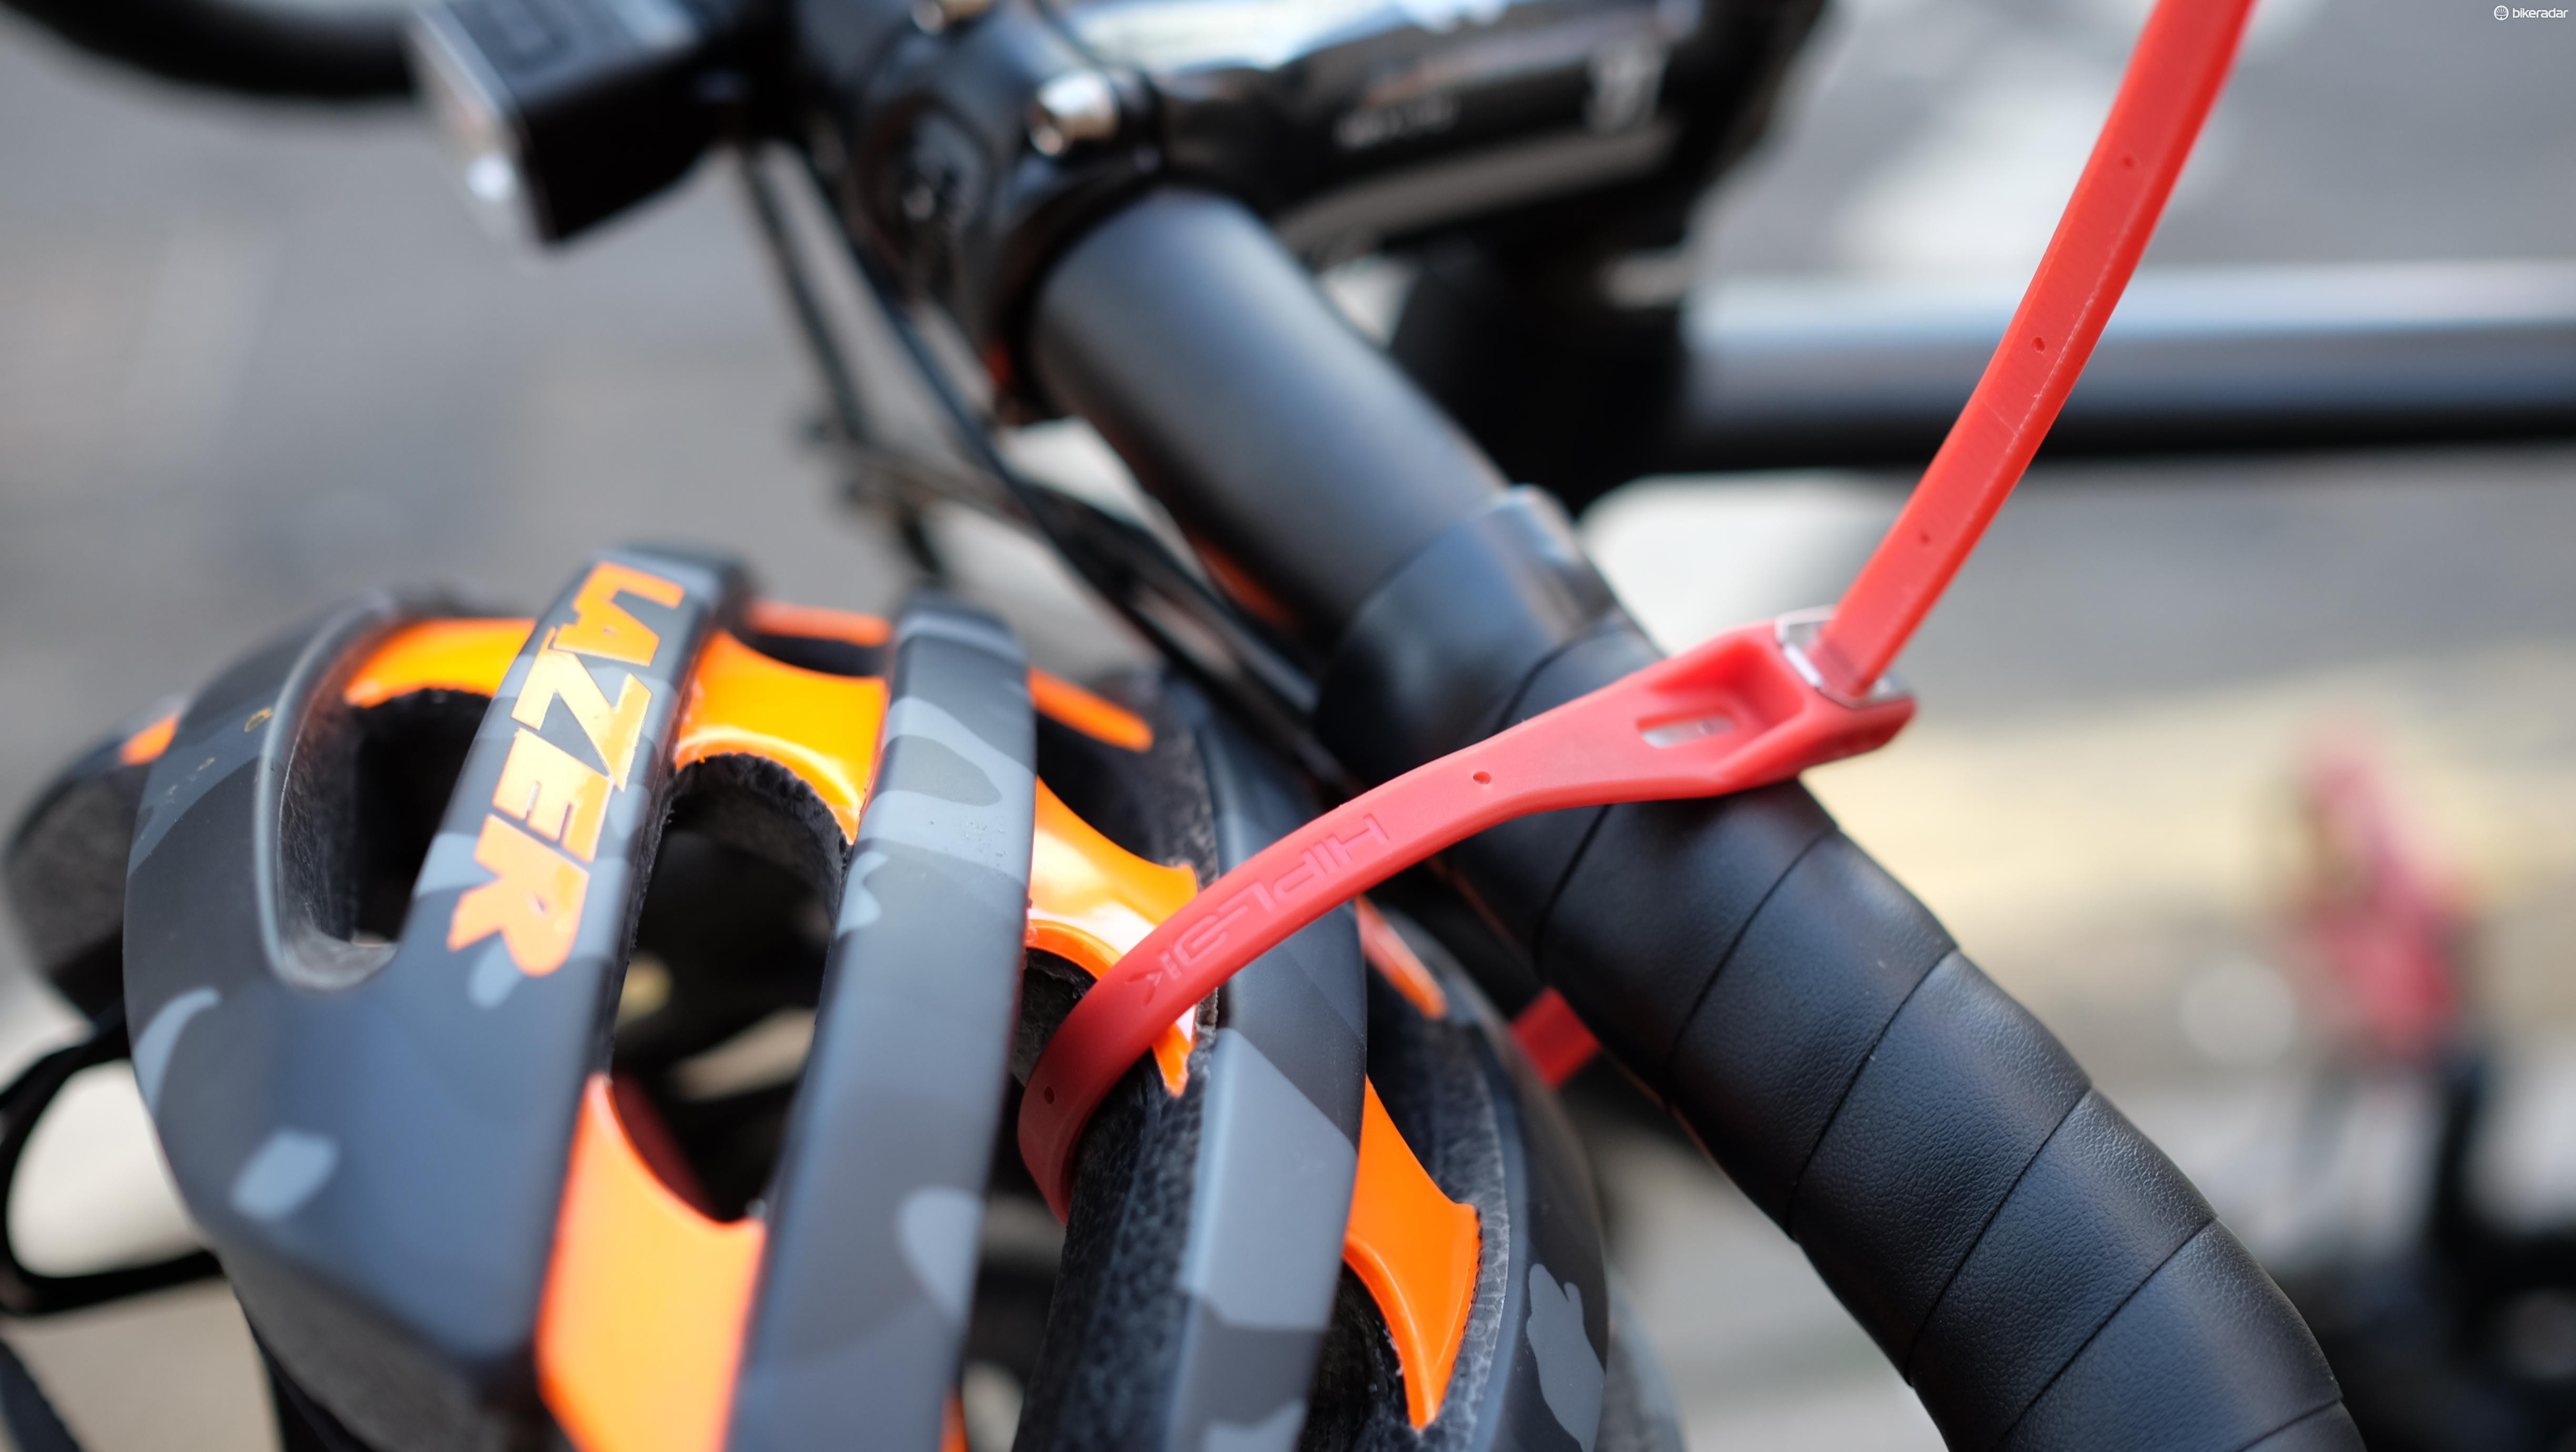 The Hiplok Z-Lok is ideal for temporarily securing helmets or other accessories